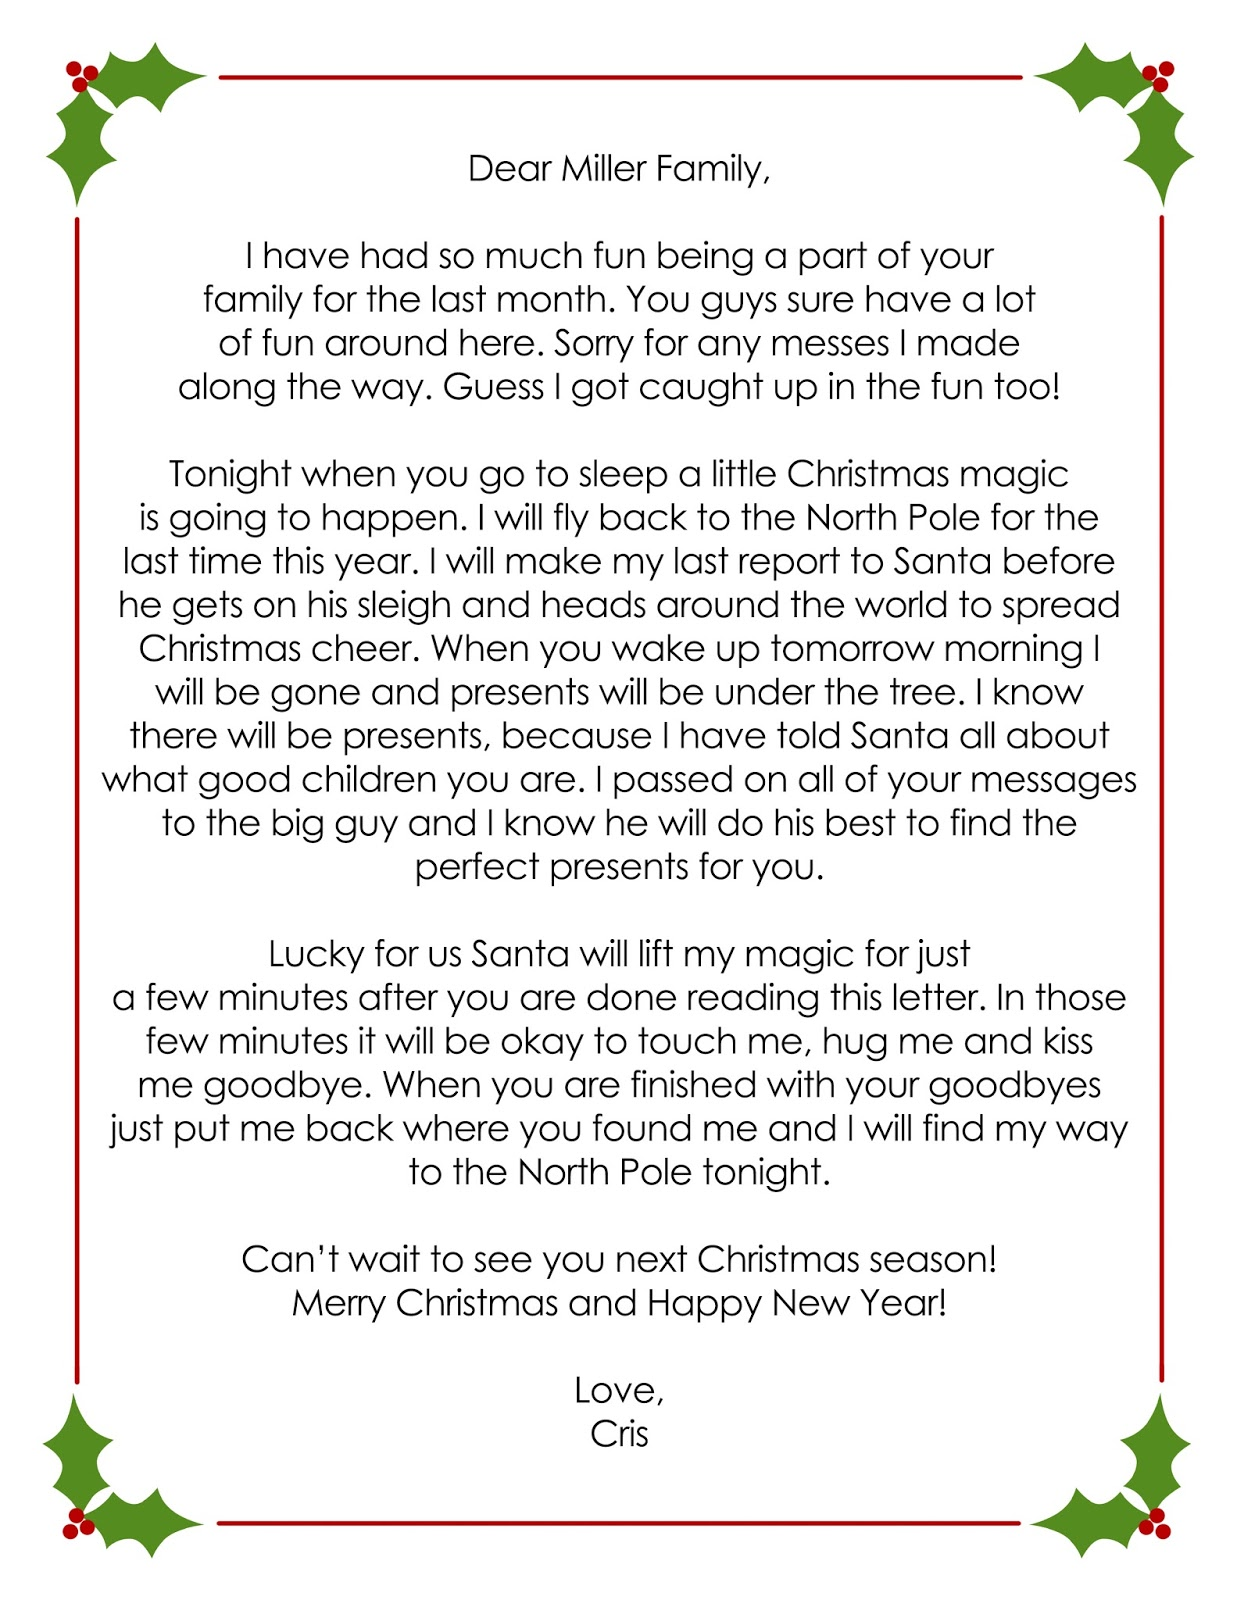 elf on the shelf farewell letter Parlobuenacocinaco